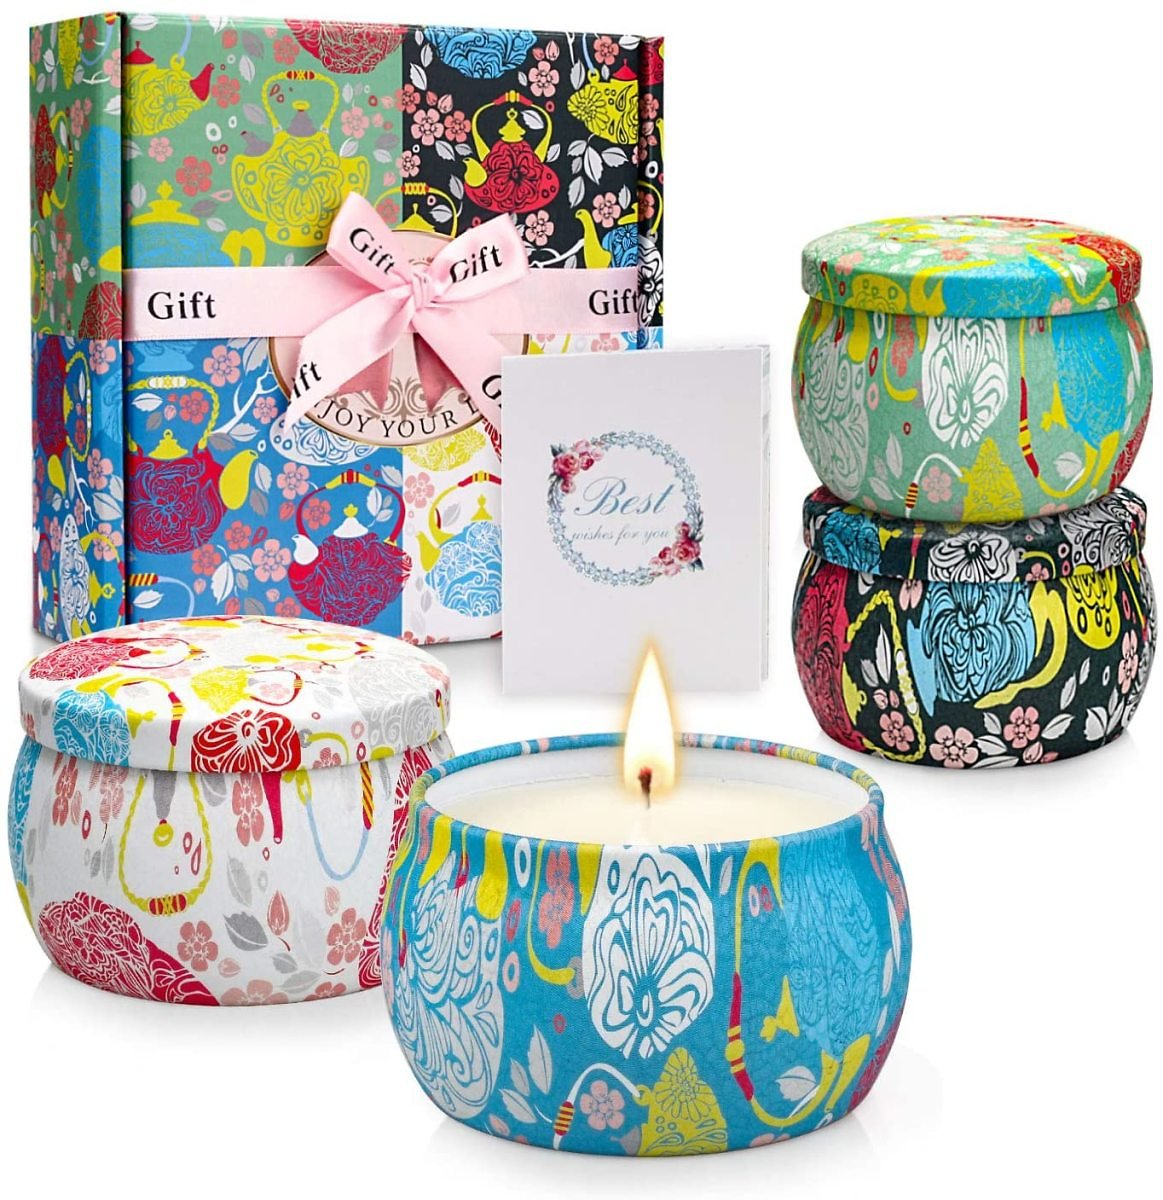 Save 32%   Special Gift: Pack of 4 Scented Candles Gift, Relaxation Aromatherapy Candle Gift Set